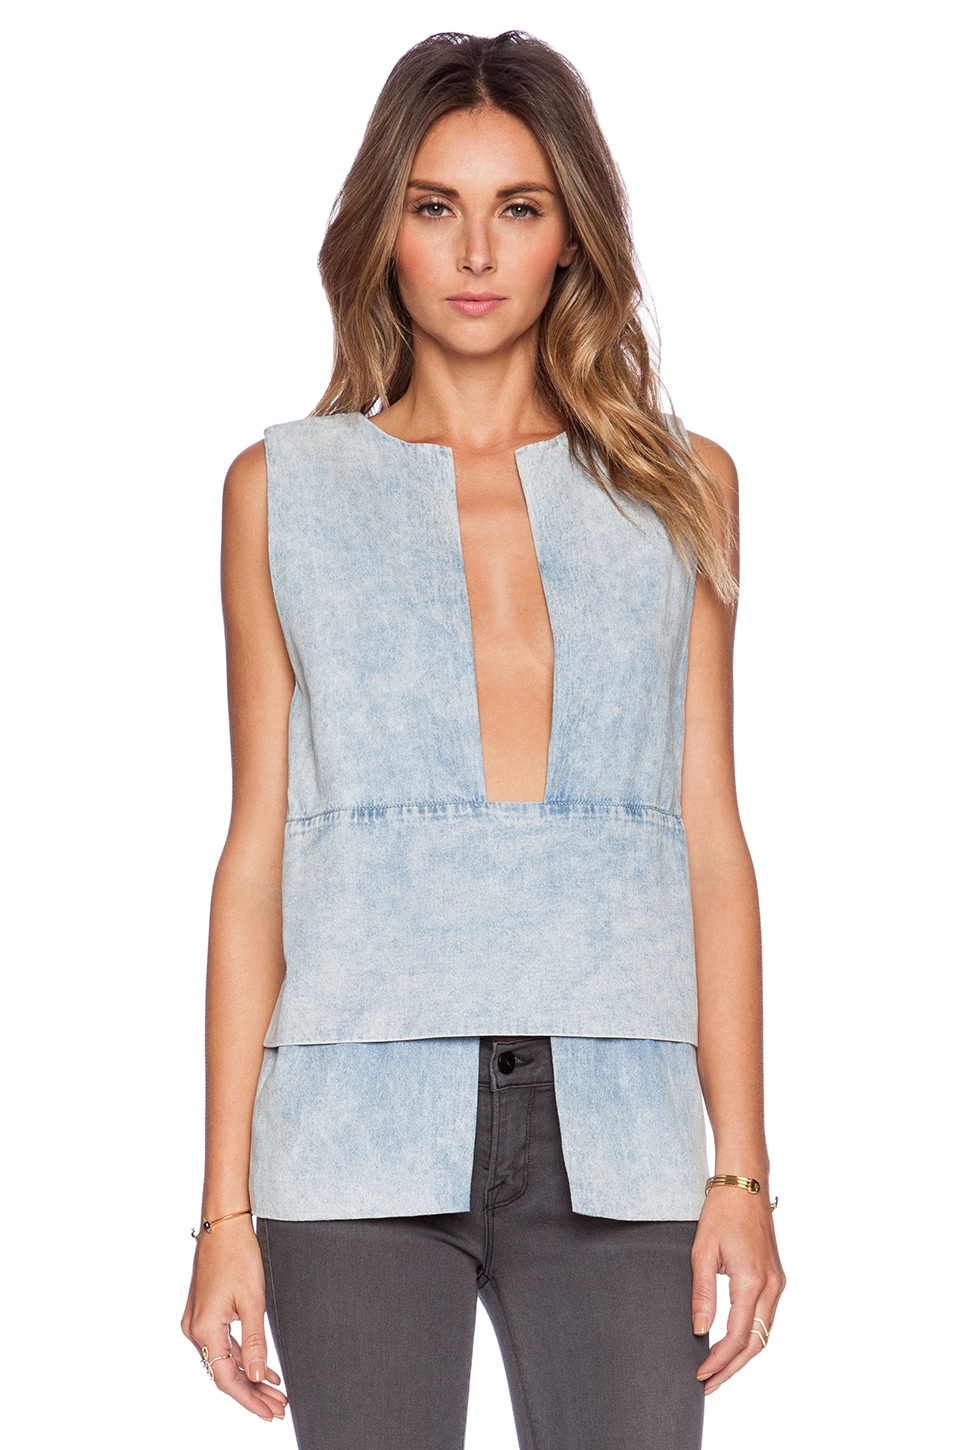 Finders Keepers Lucid Dreams Top in Chambray